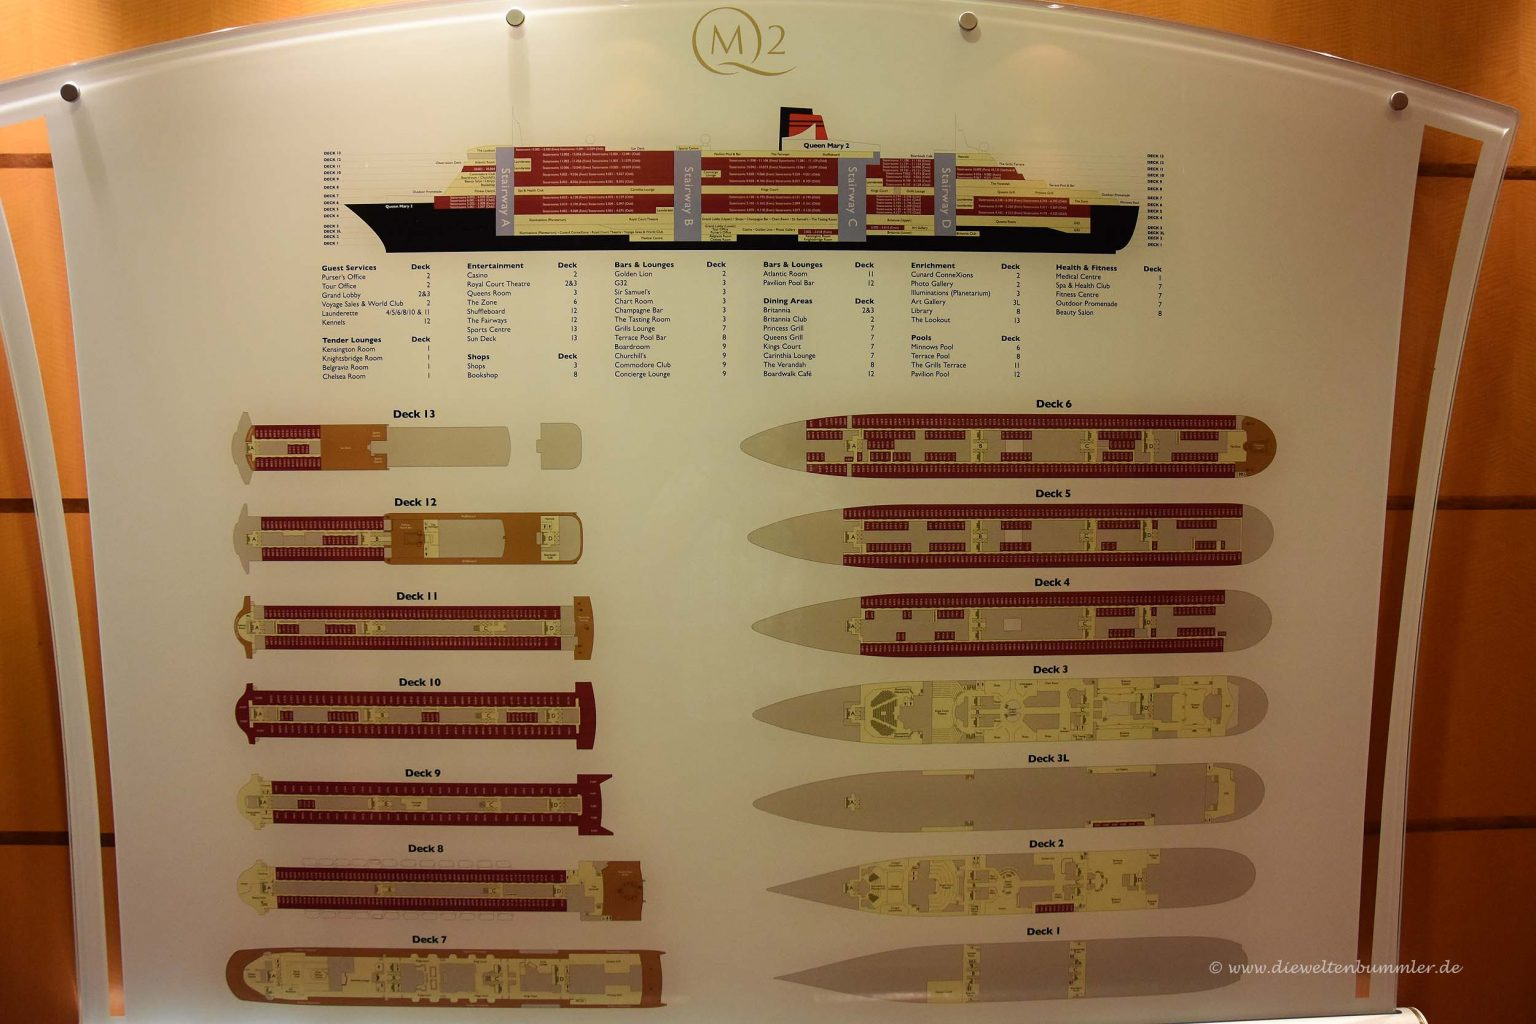 Deckplan der Queen Mary 2